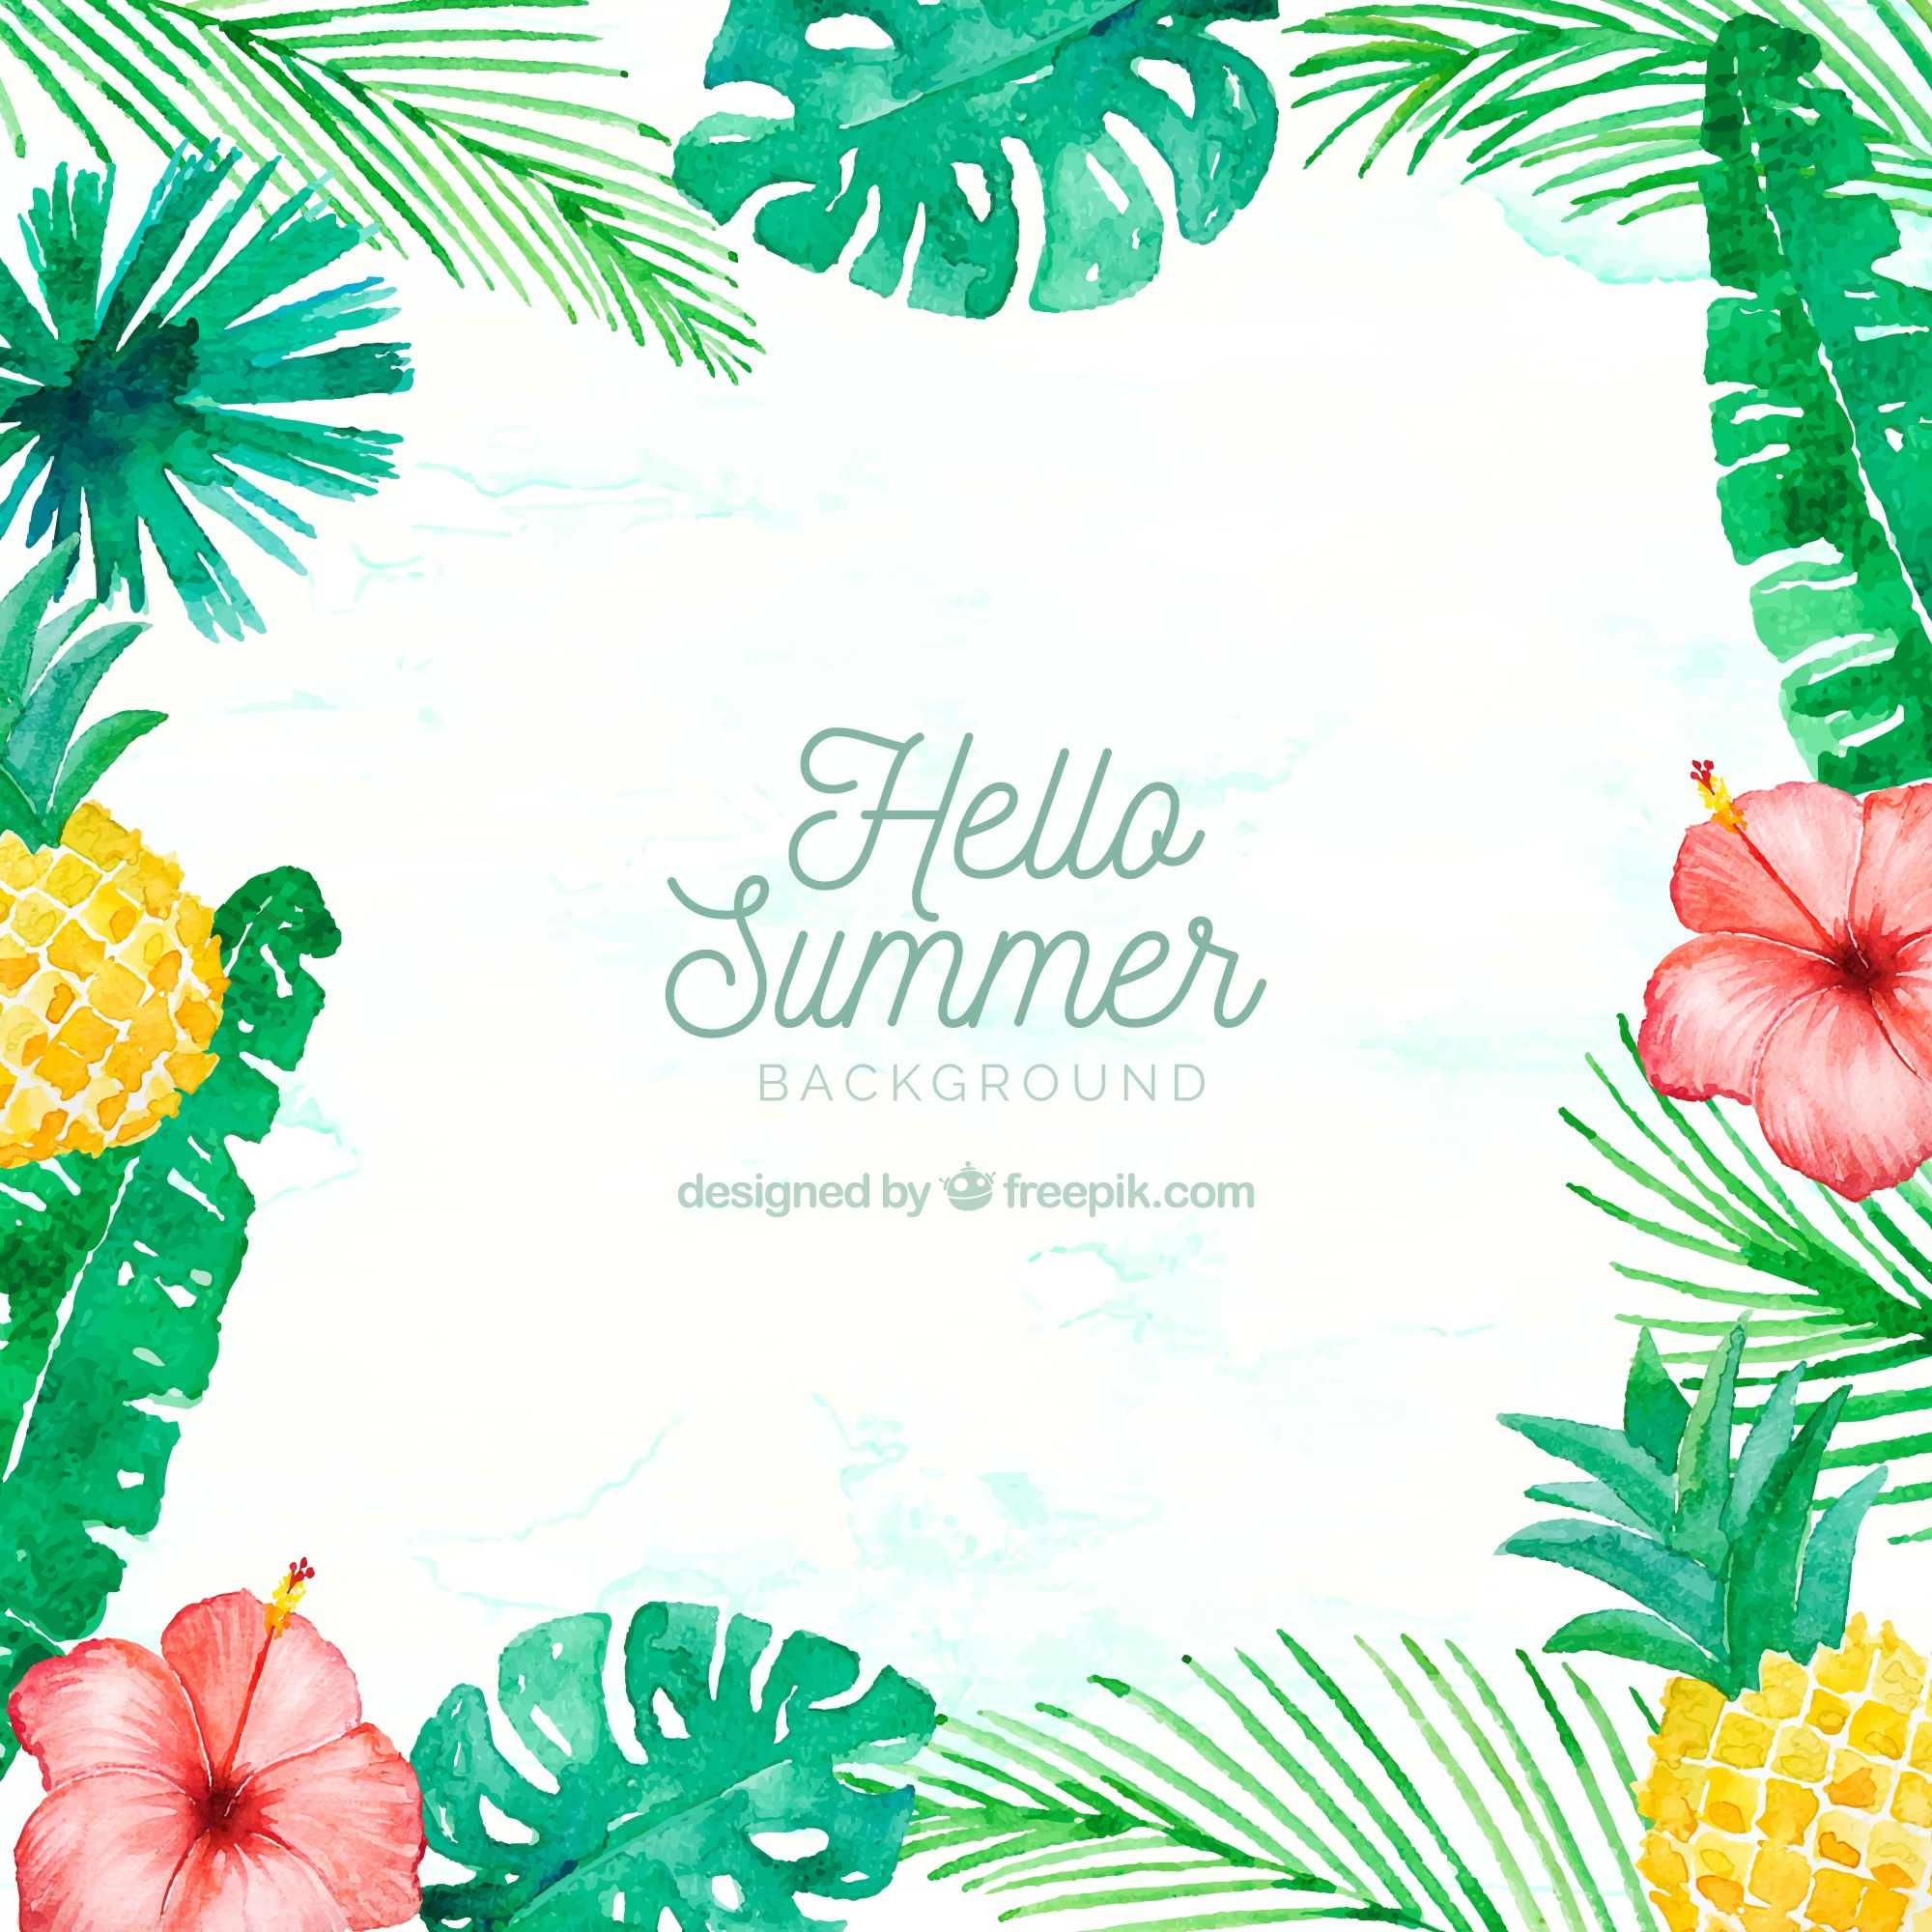 Hello summer background with plants and fruits in watercolor style